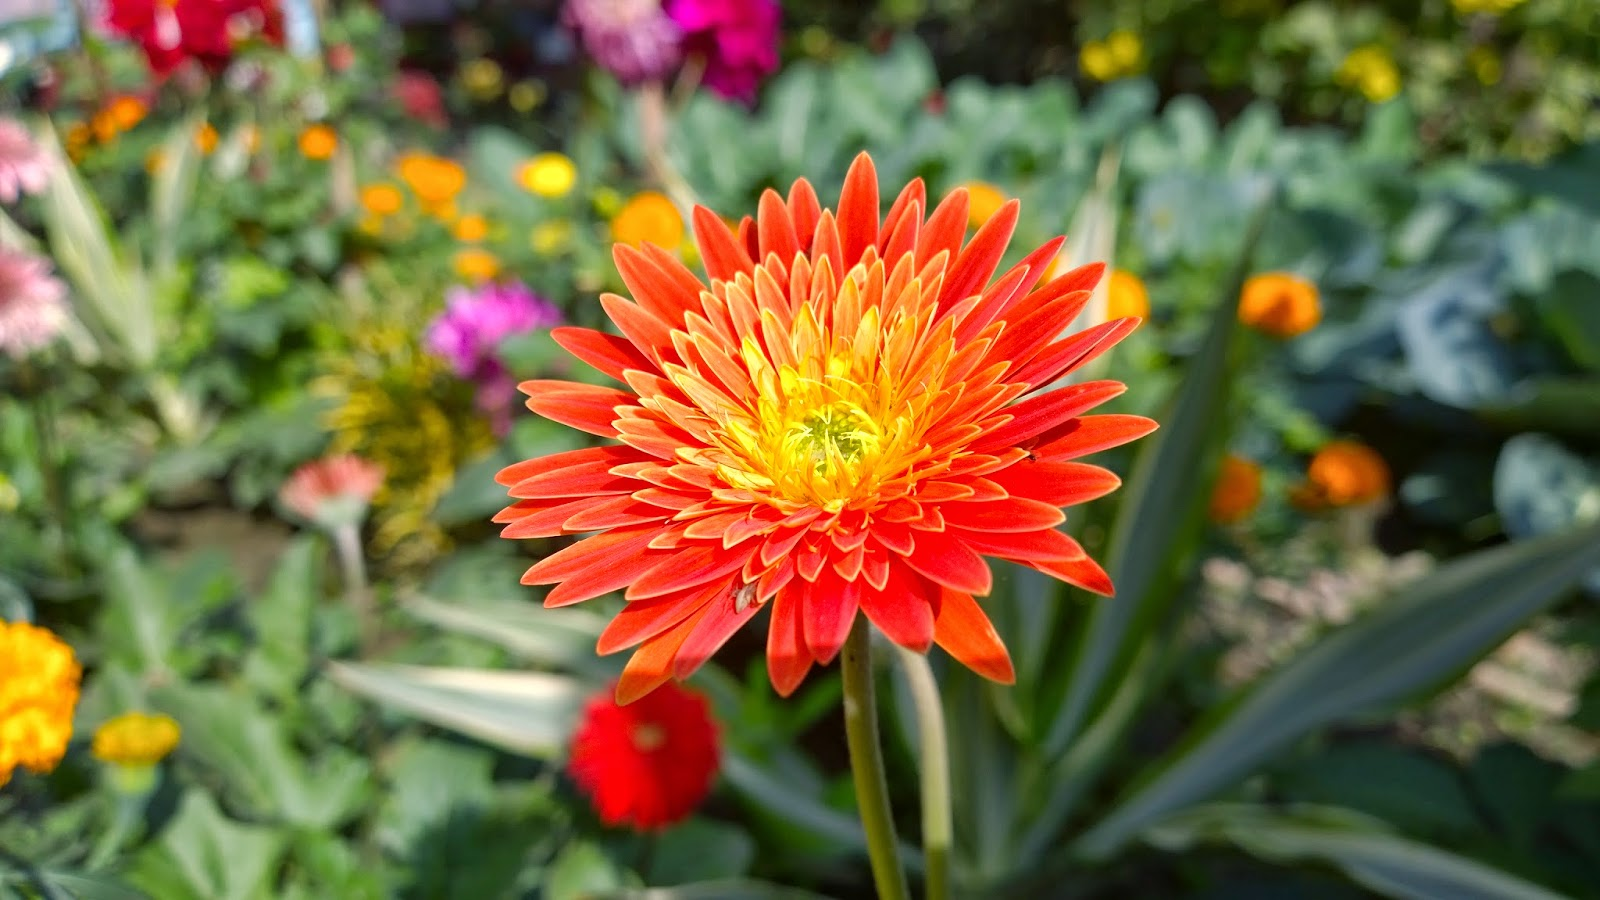 86 Pictures Of Indian Flowers With Names Flower Names Glitter Wallpaper Creepypasta Choose from Our Pictures  Collections Wallpapers [x-site.ml]